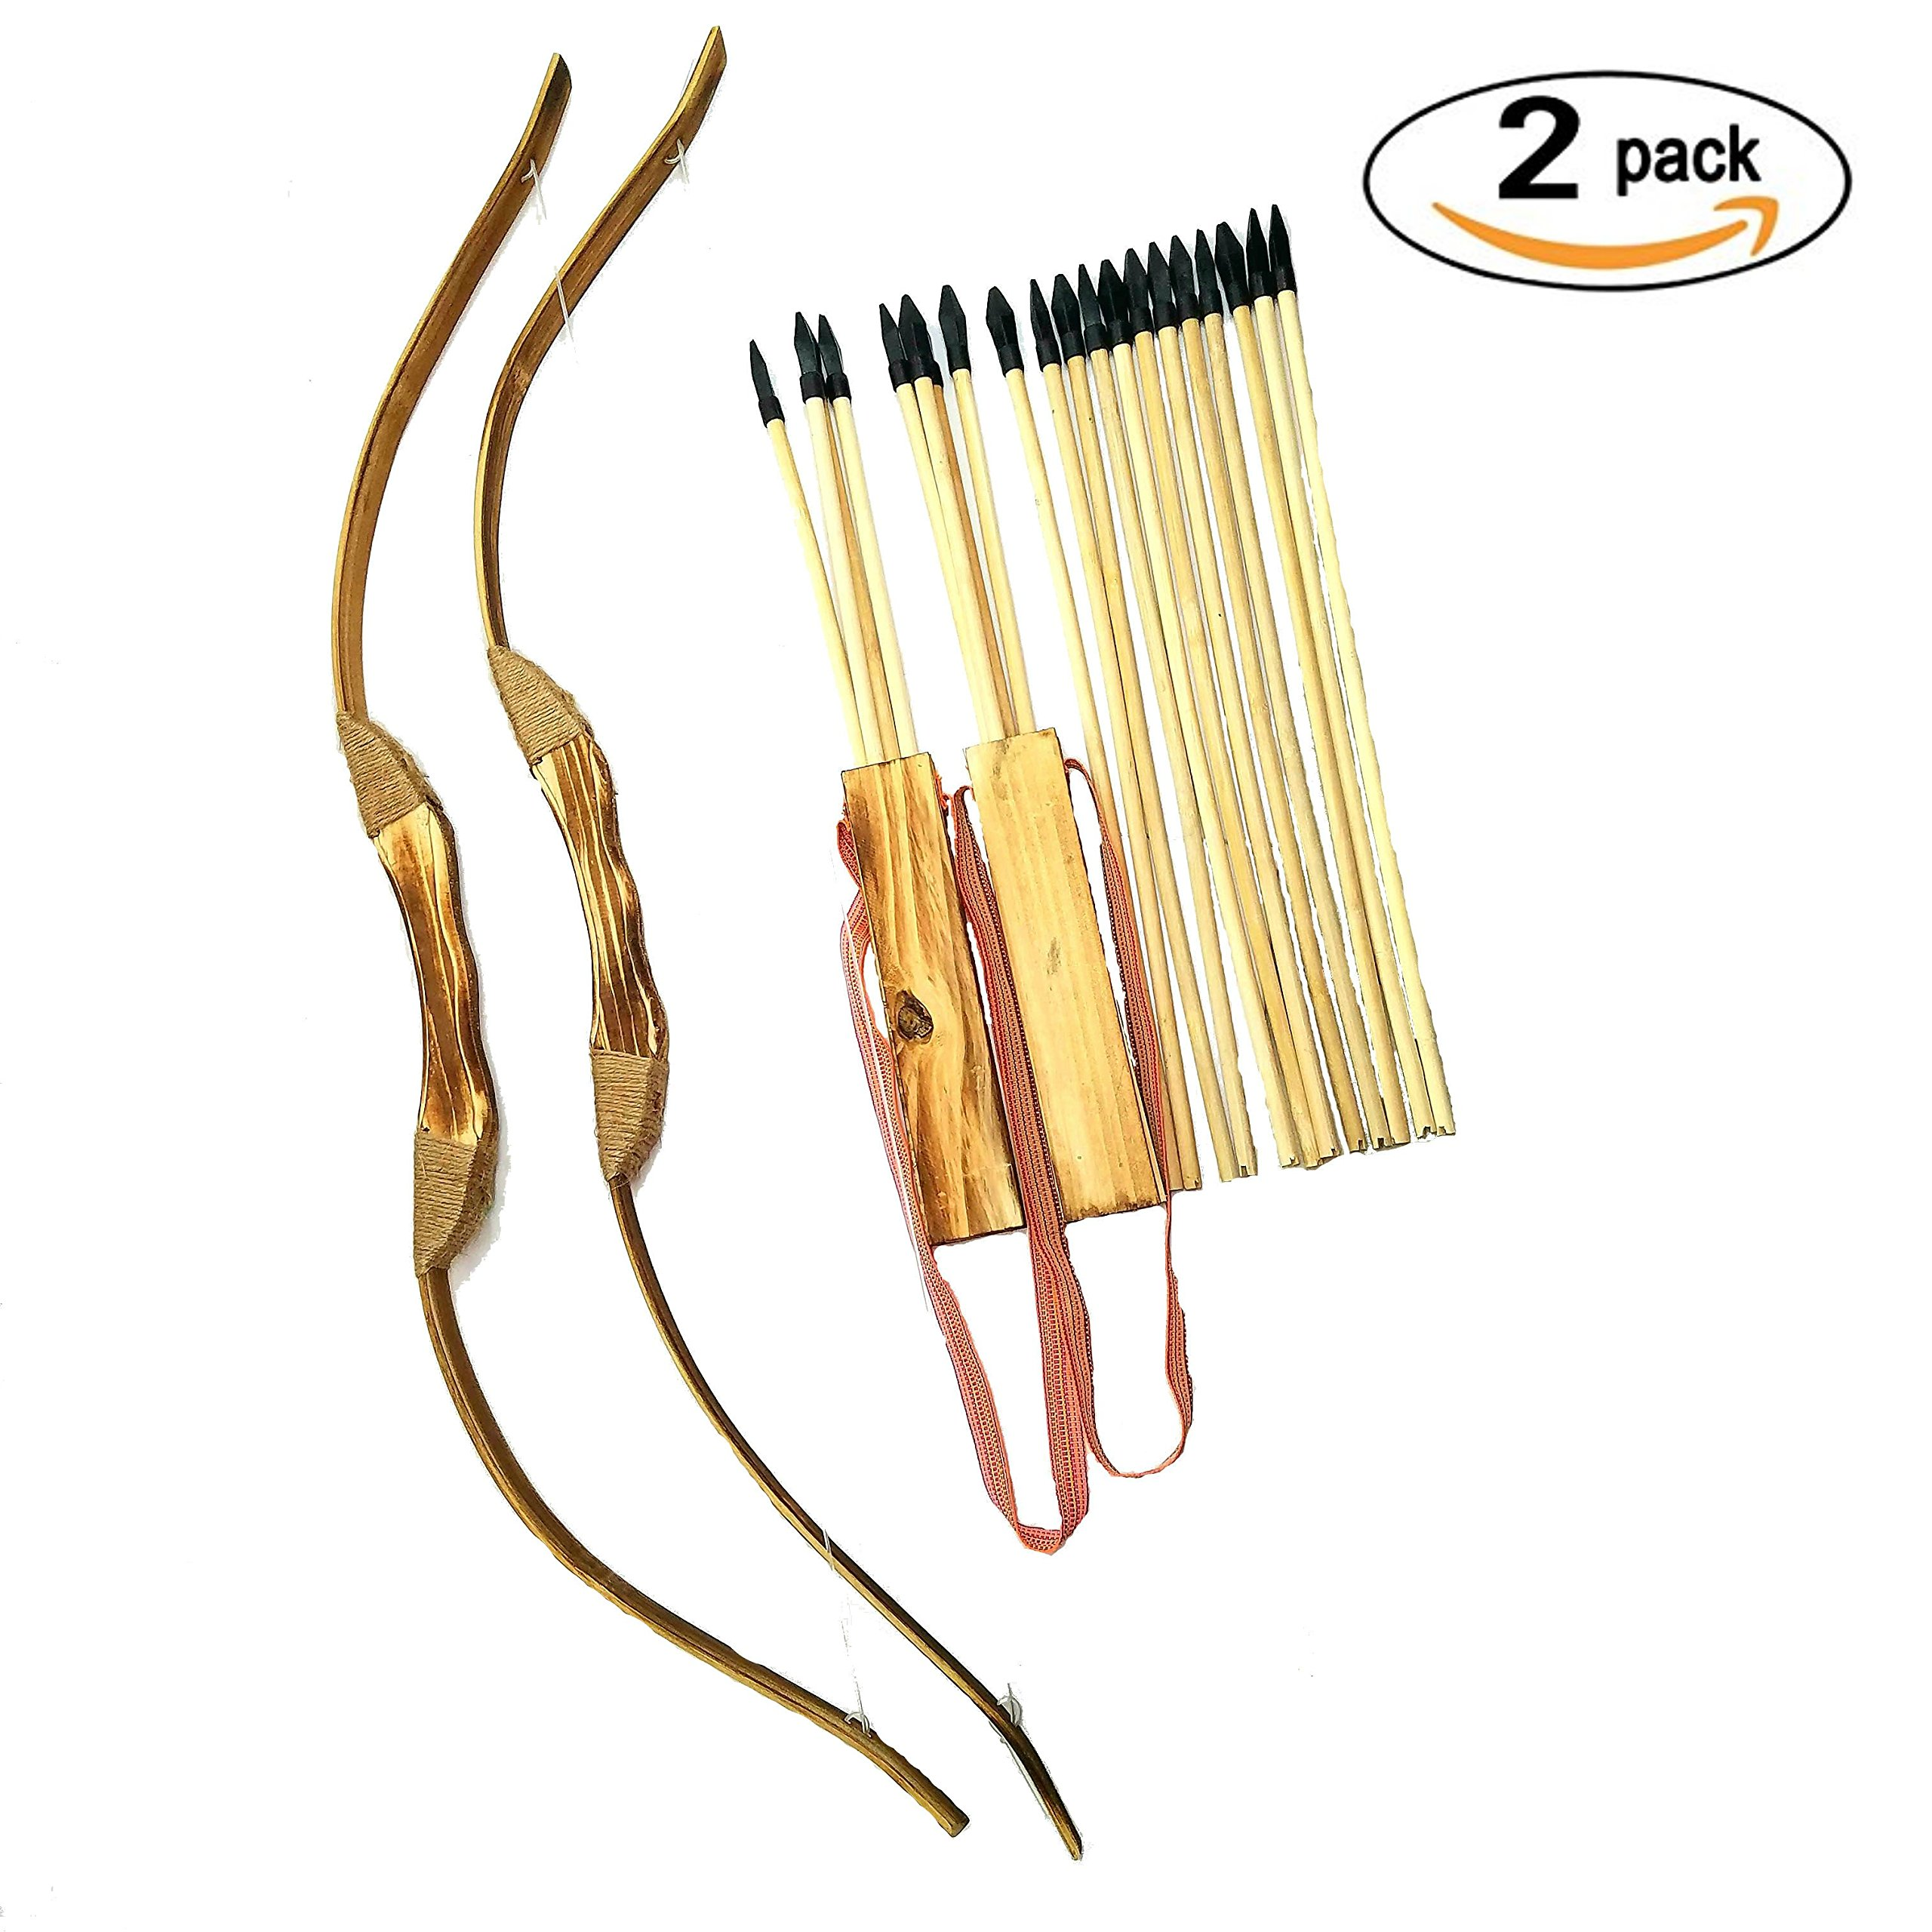 Adventure Awaits - 2-Pack Handmade Wooden Bow and Arrow Set - 20 Wood Arrows and 2 Quivers - For Outdoor Play